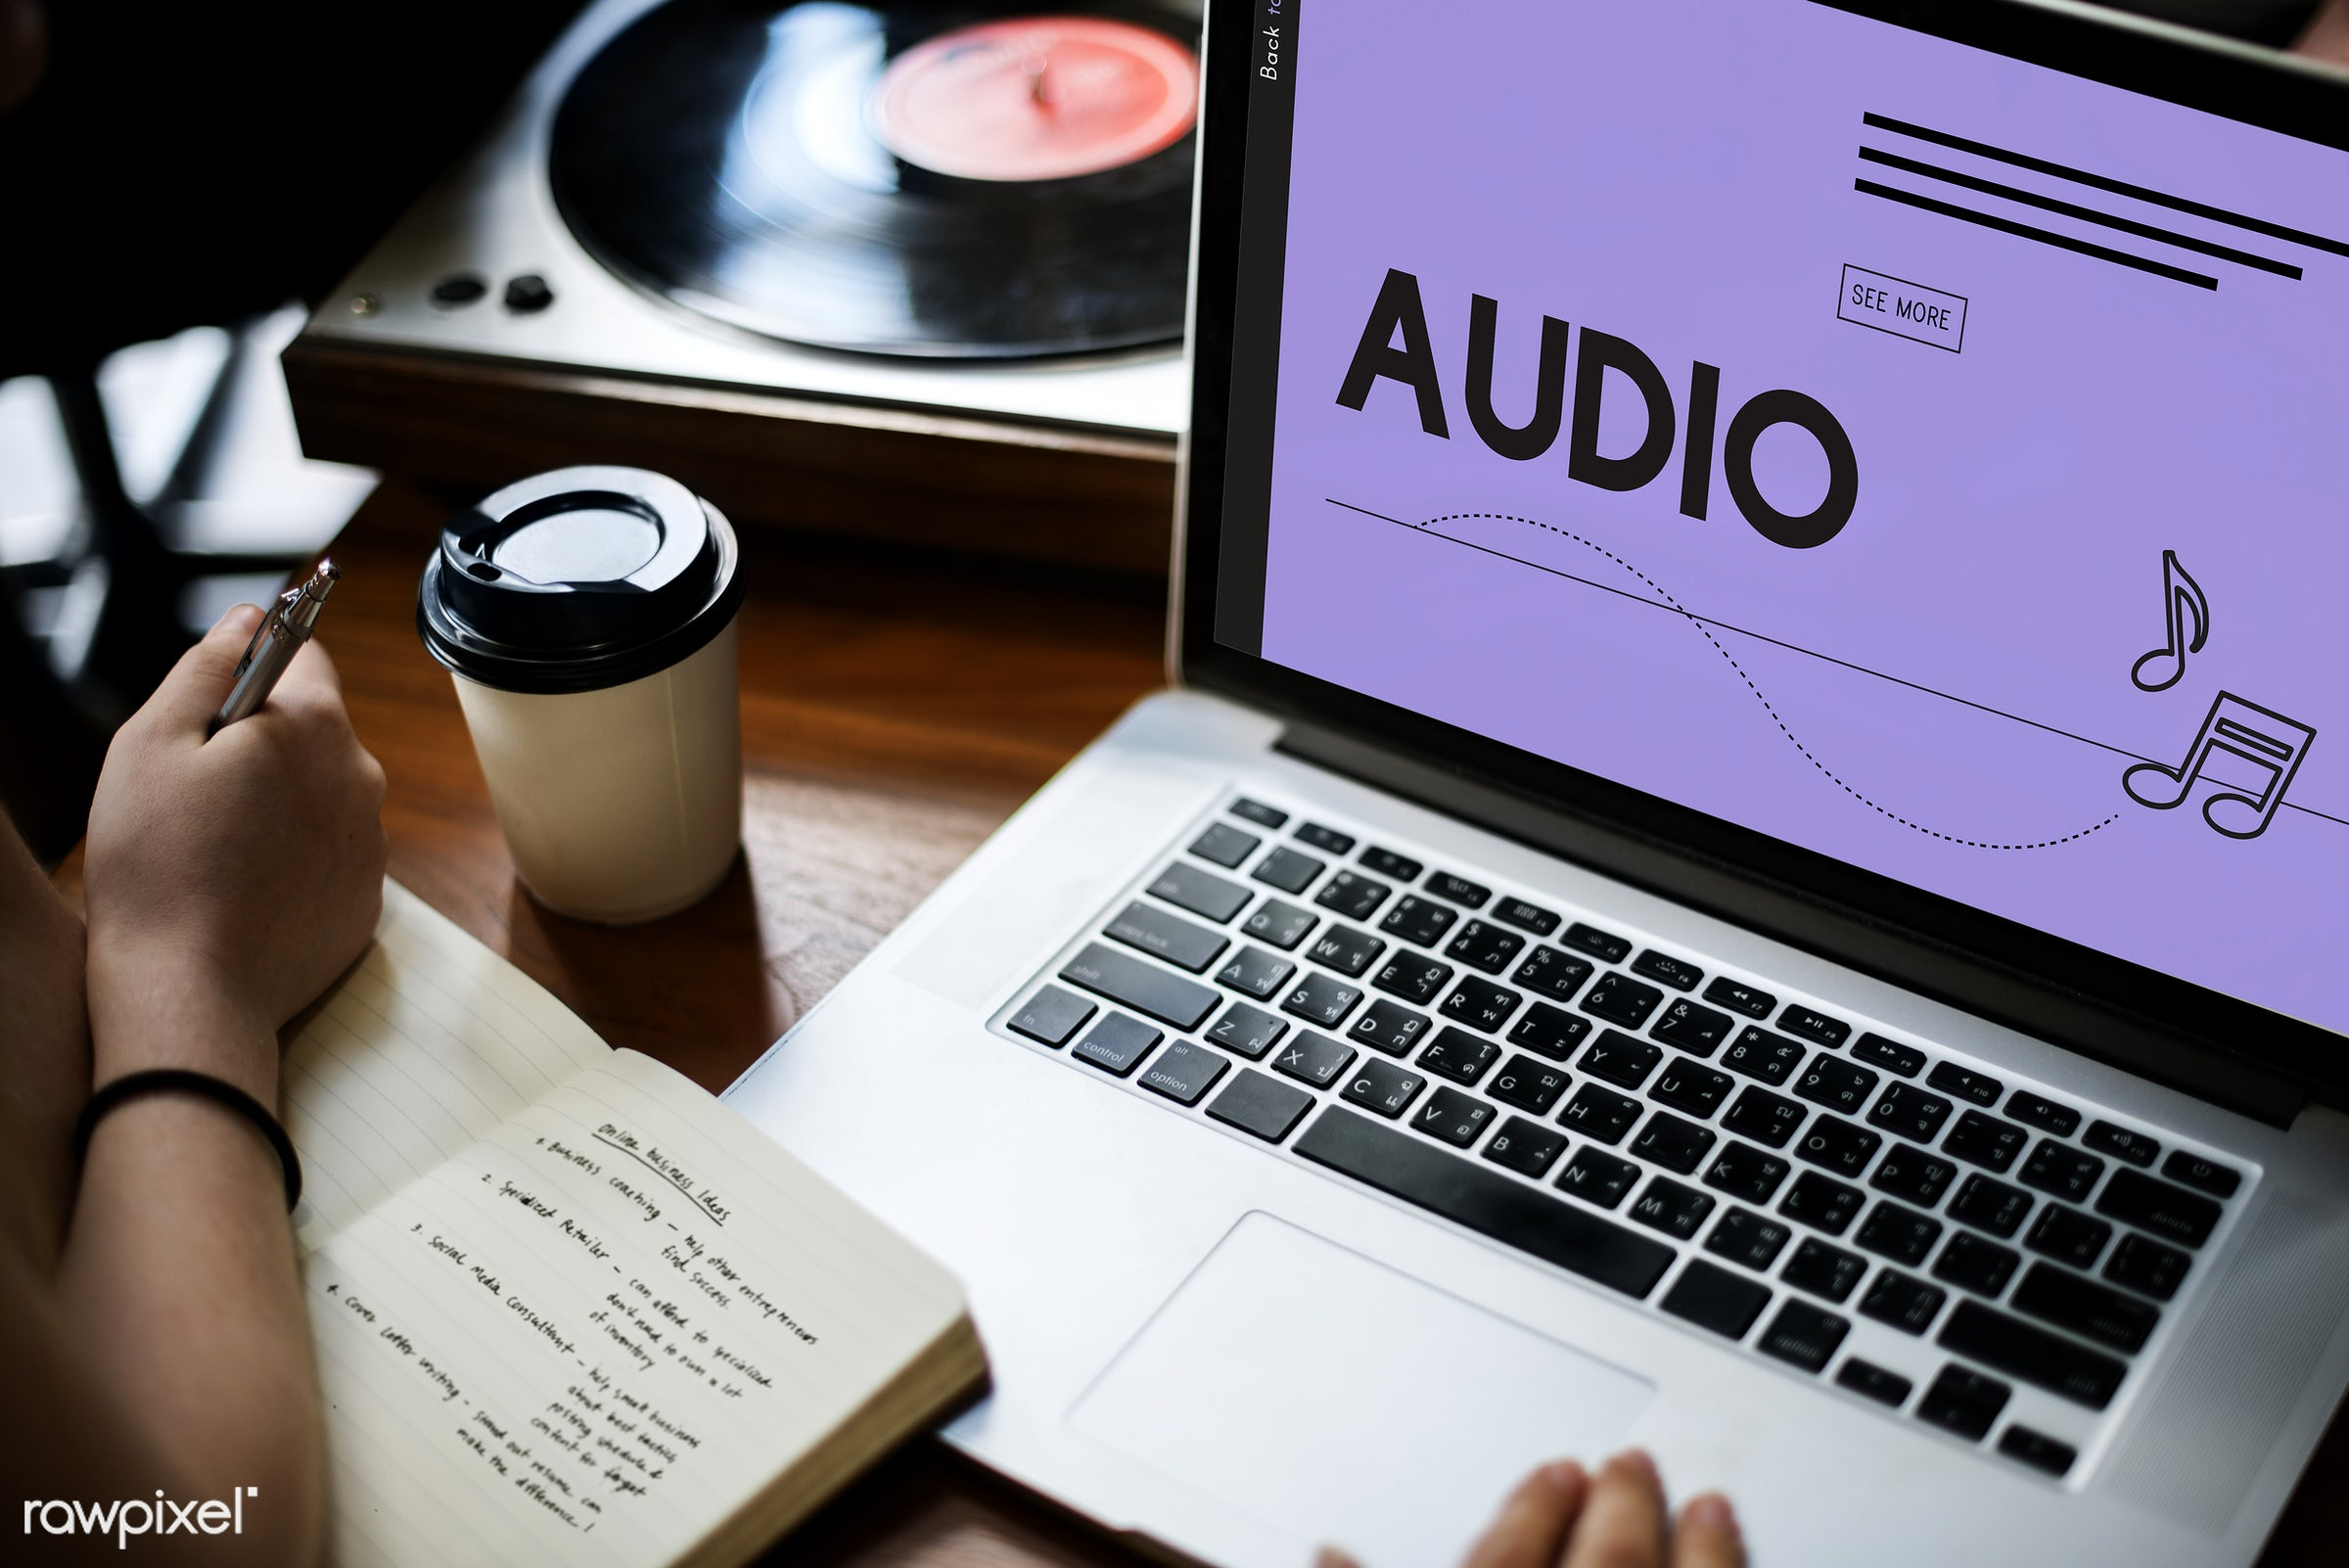 arts, audio, beat, browsing, coffee cup, device, digital, digital device, entertainment, hands, icon, laptop, man, media,...